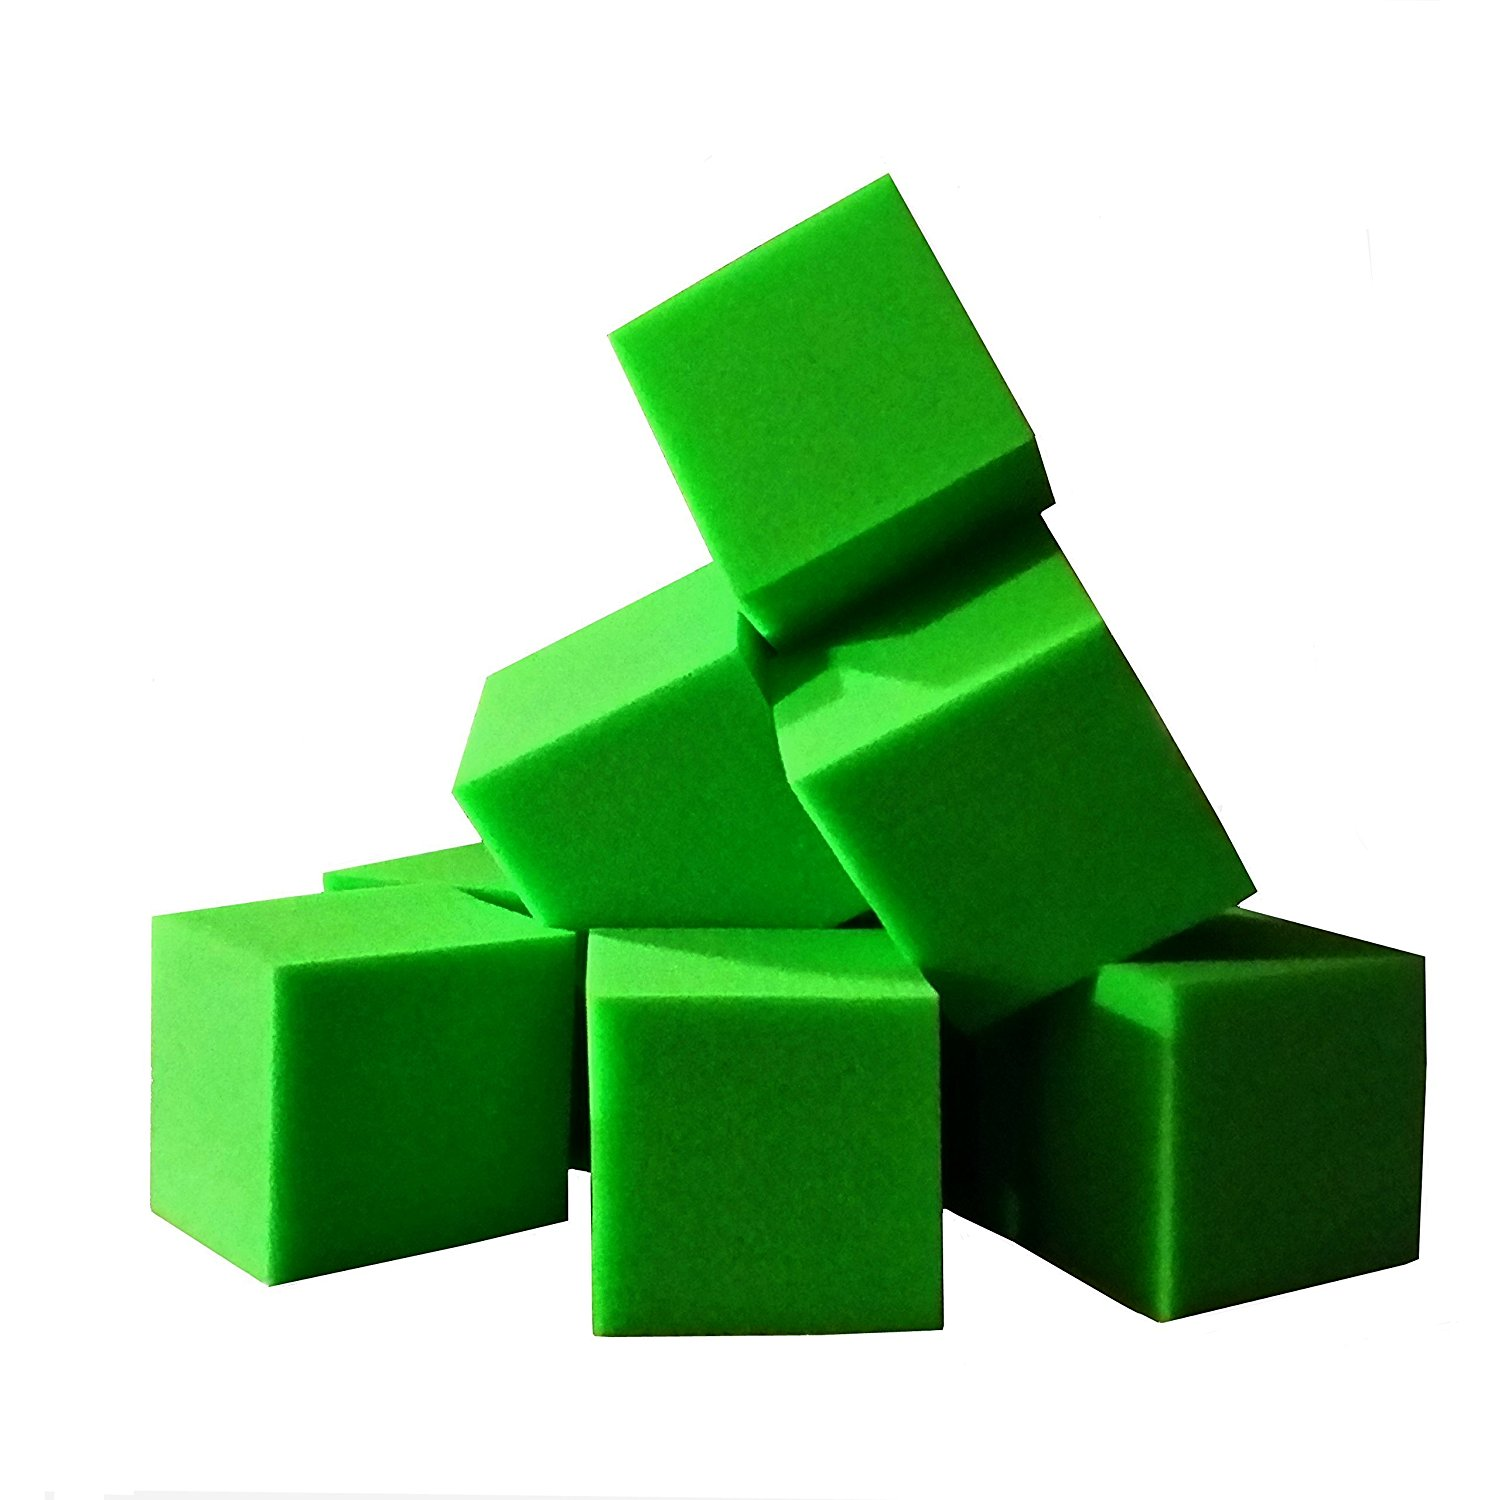 "Foam Pits Cubes/Blocks 68 pcs. (LIME GREEN) 8""x8""x8"" (1536) Flame Retardant Pit Foam Blocks For Ninja Obstacle Course, Skateboard Parks, Gymnastics Companies, and Trampoline Arenas"